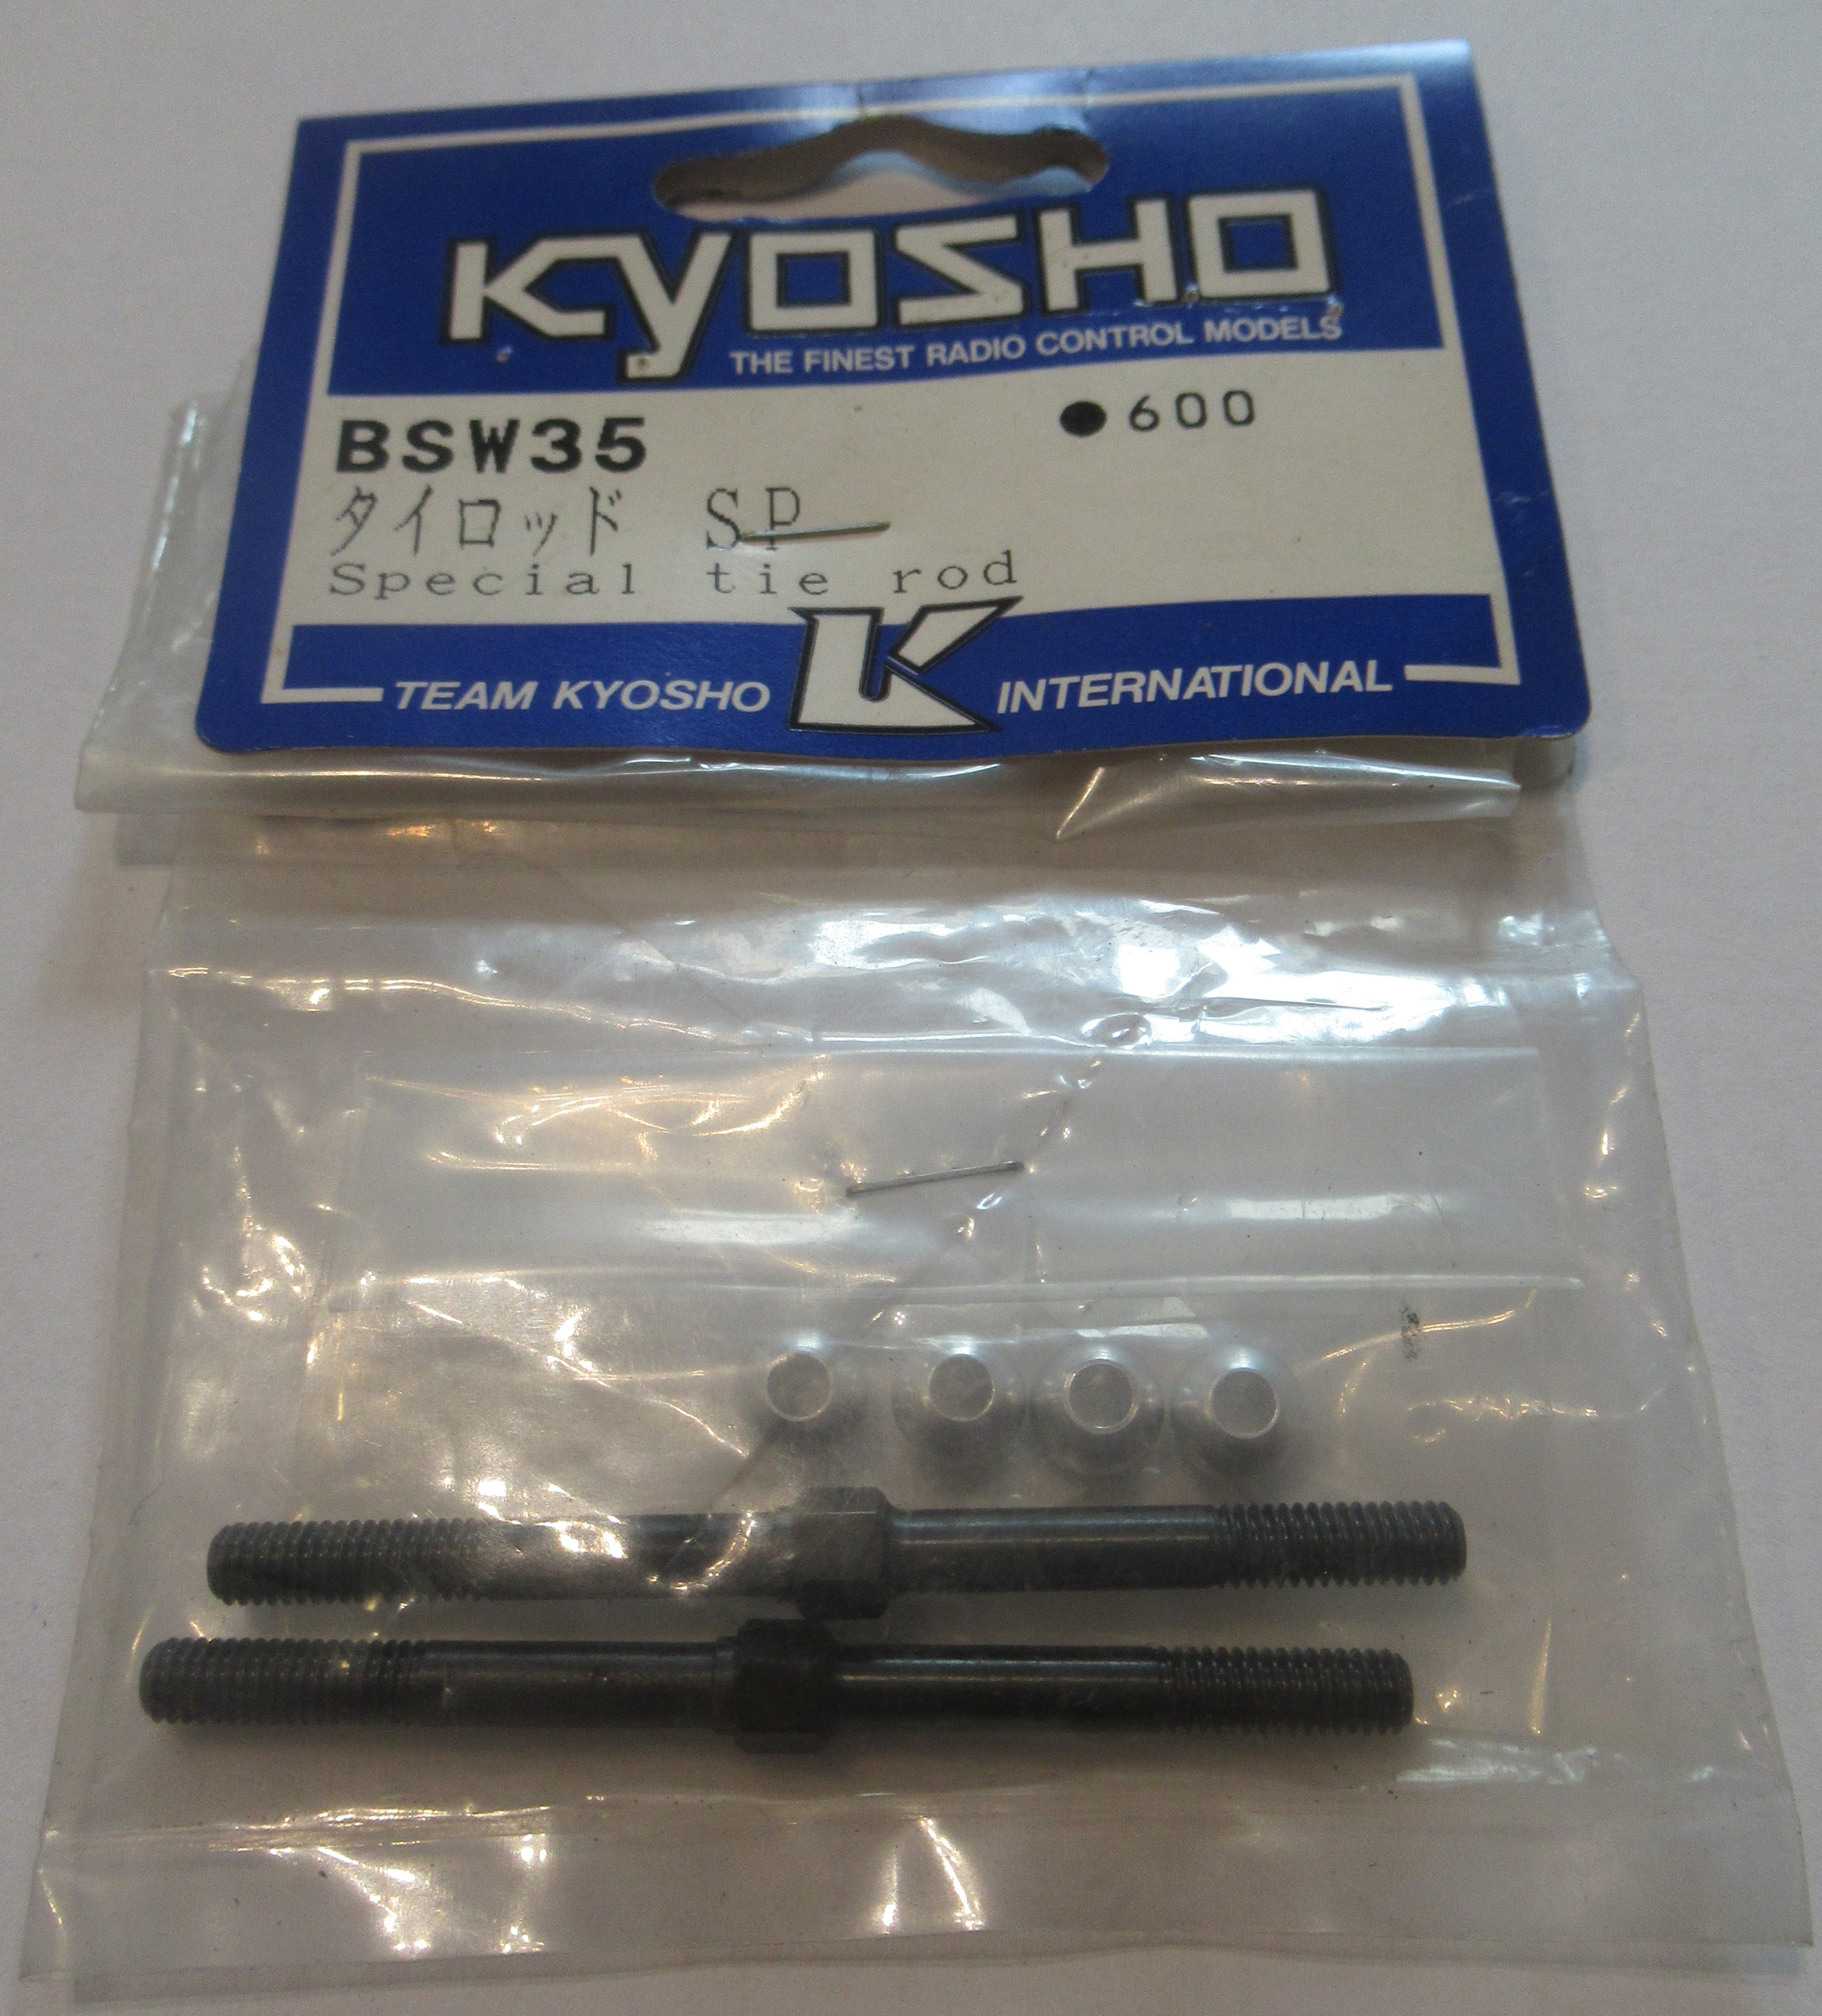 Kyosho BSW35 Special tie rod